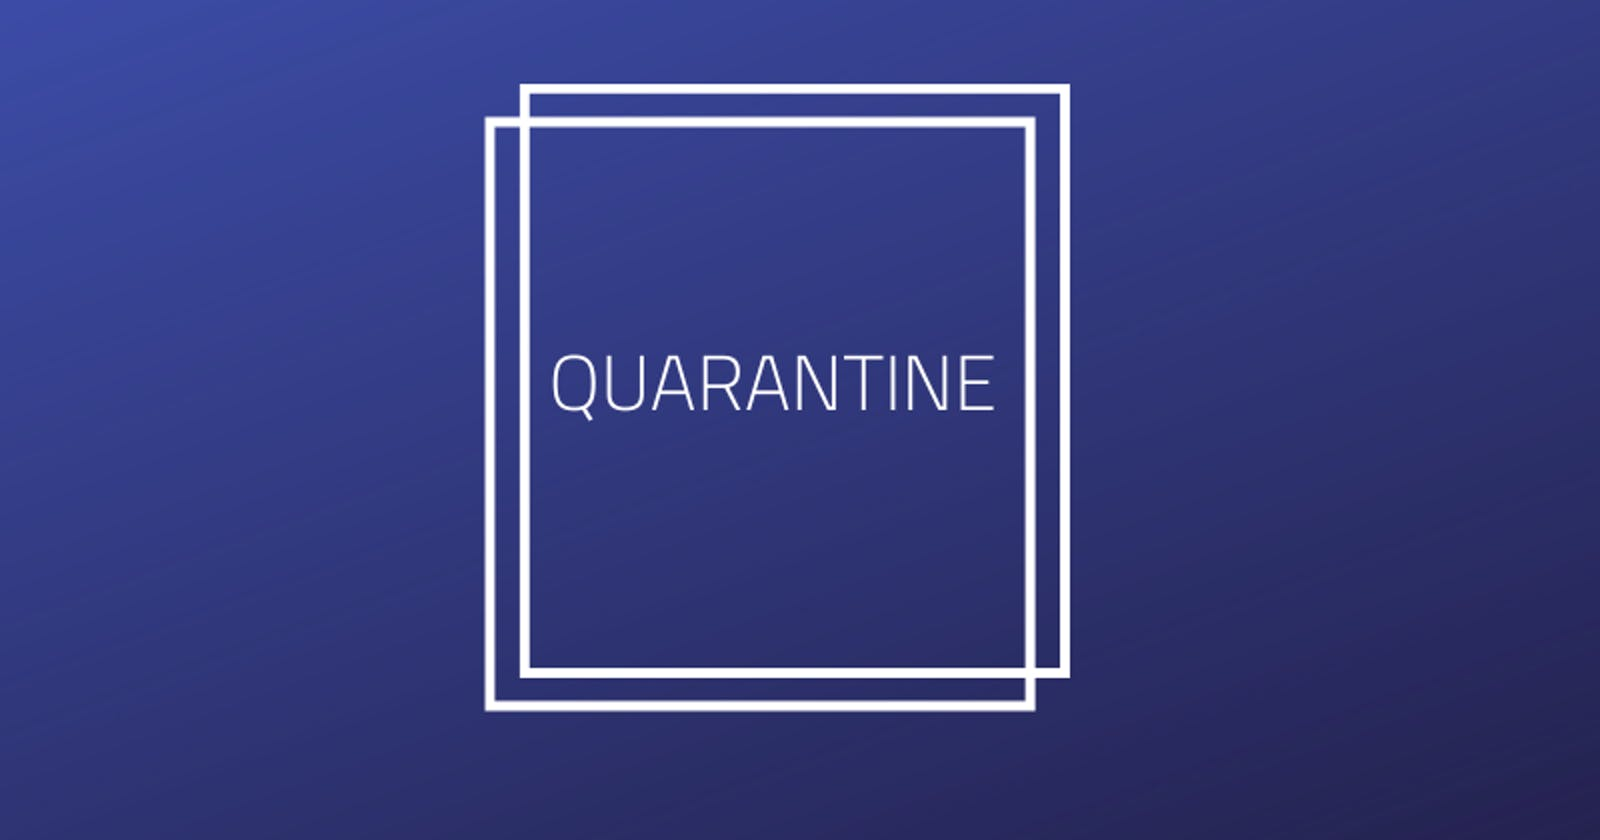 Thoughts about quarantine and how I am handling it